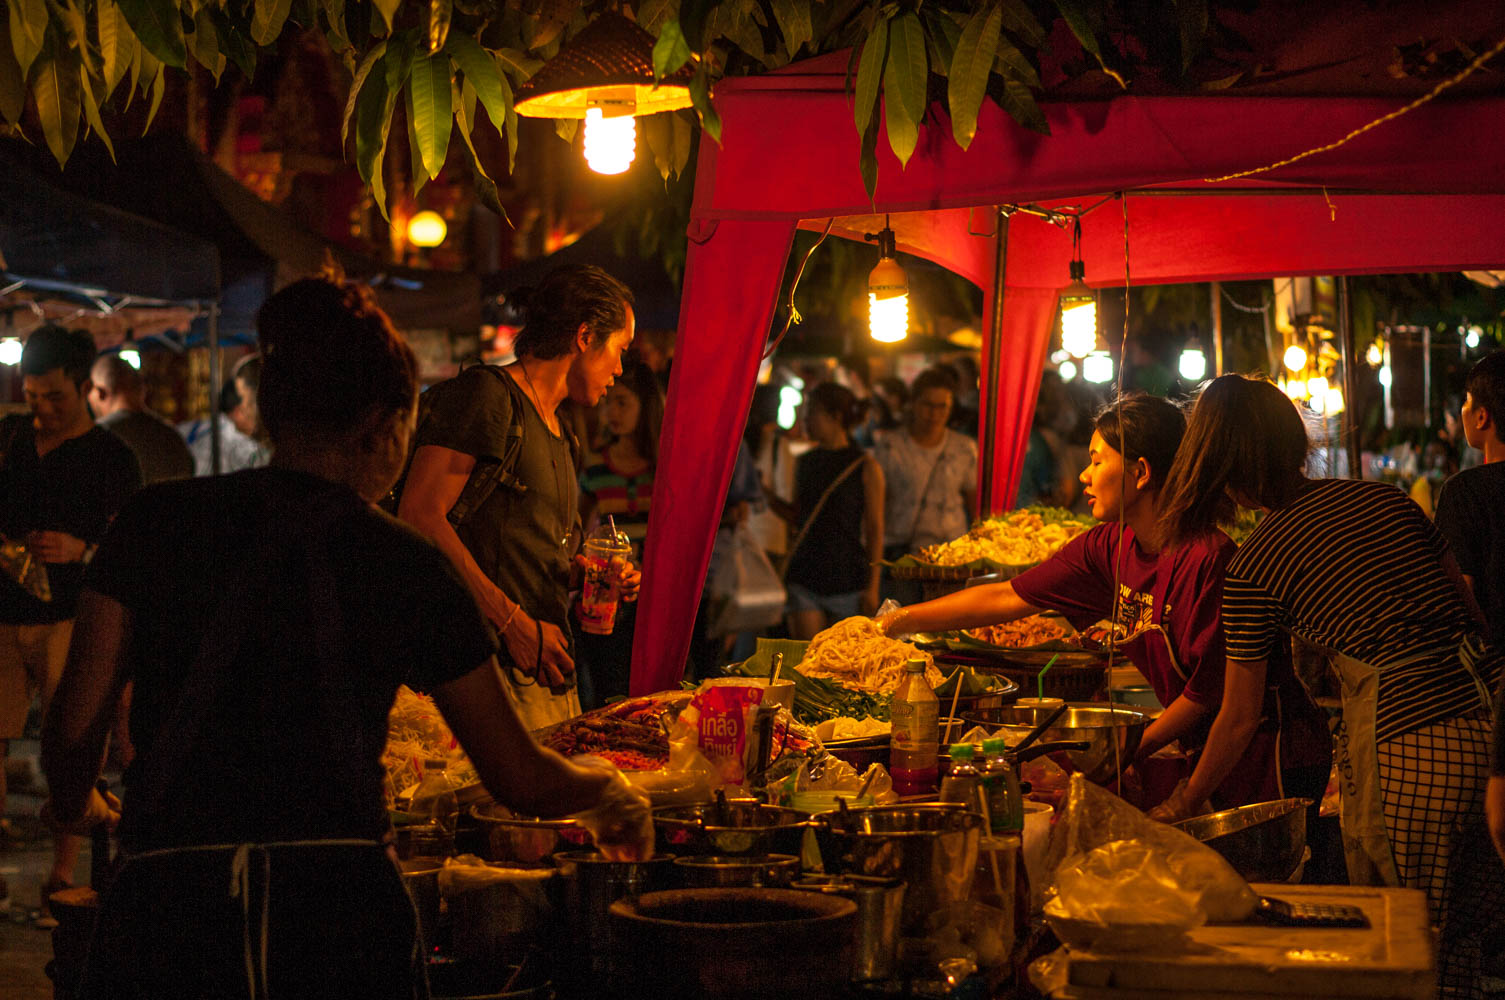 Street food marketplace in Northern Thailand